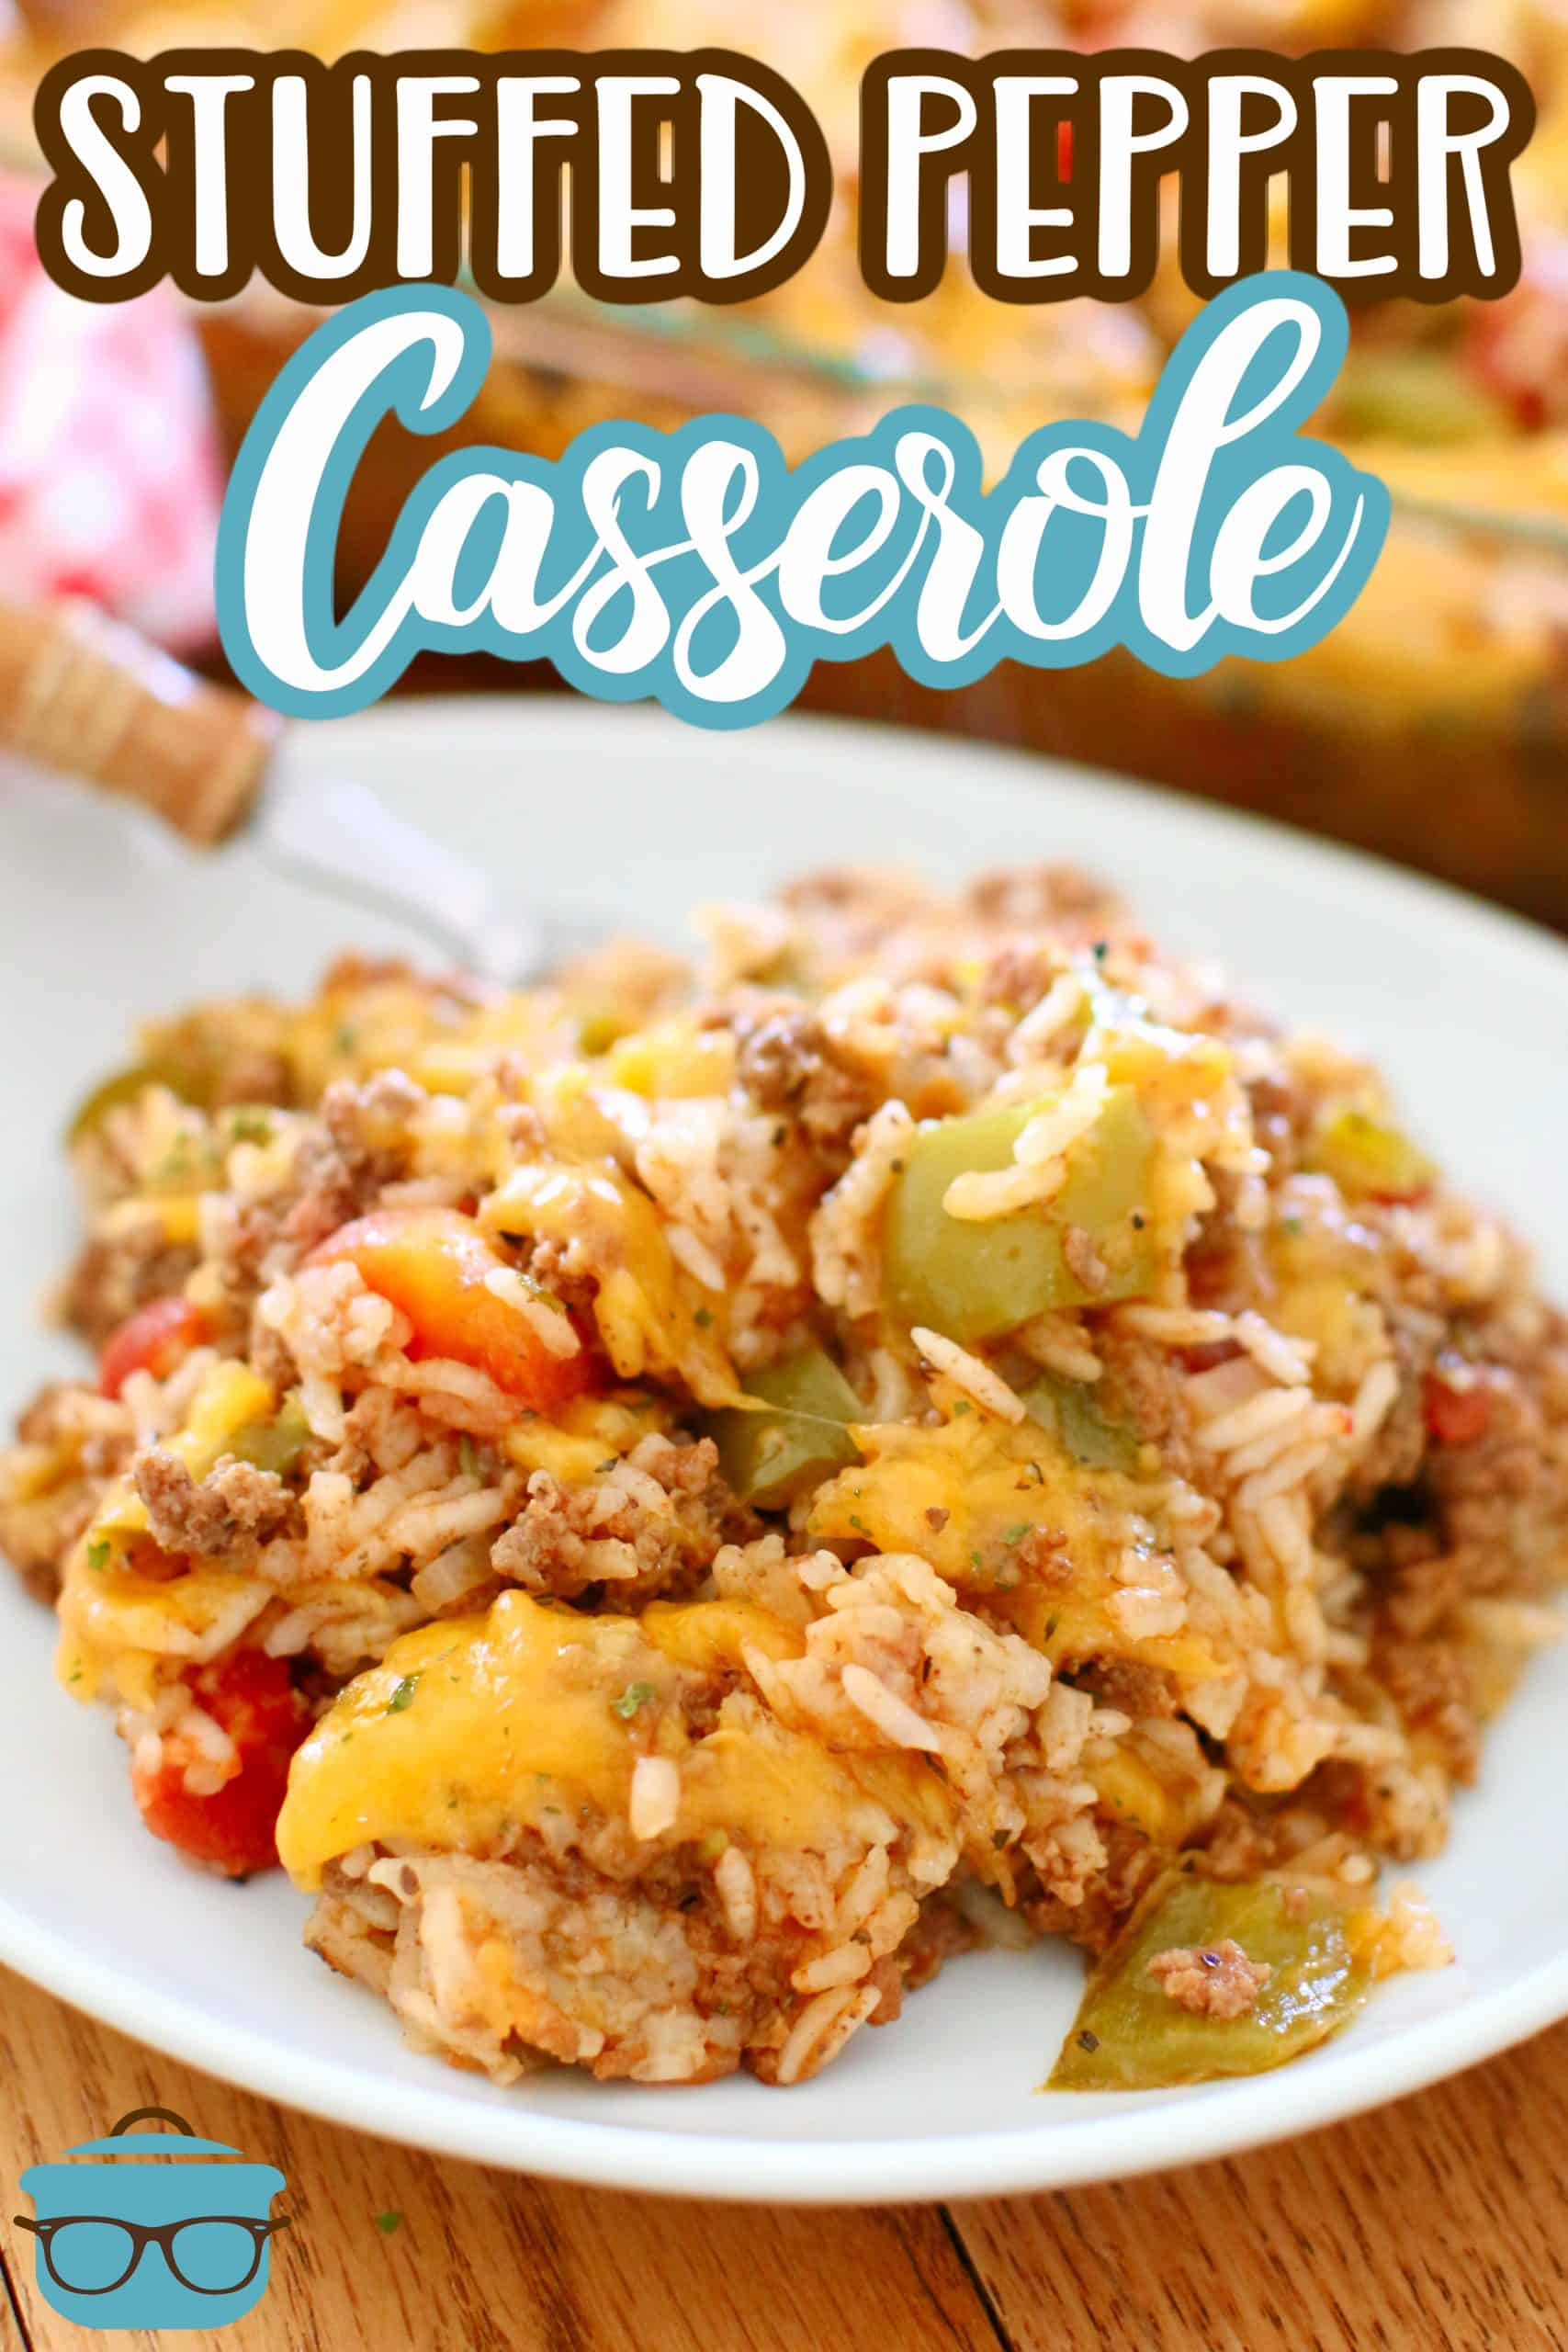 The Best Stuffed Pepper Casserole is a deliciously easy and tasty dinner recipe! Ground beef, rice, tomatoes, garlic, cheese and seasonings!